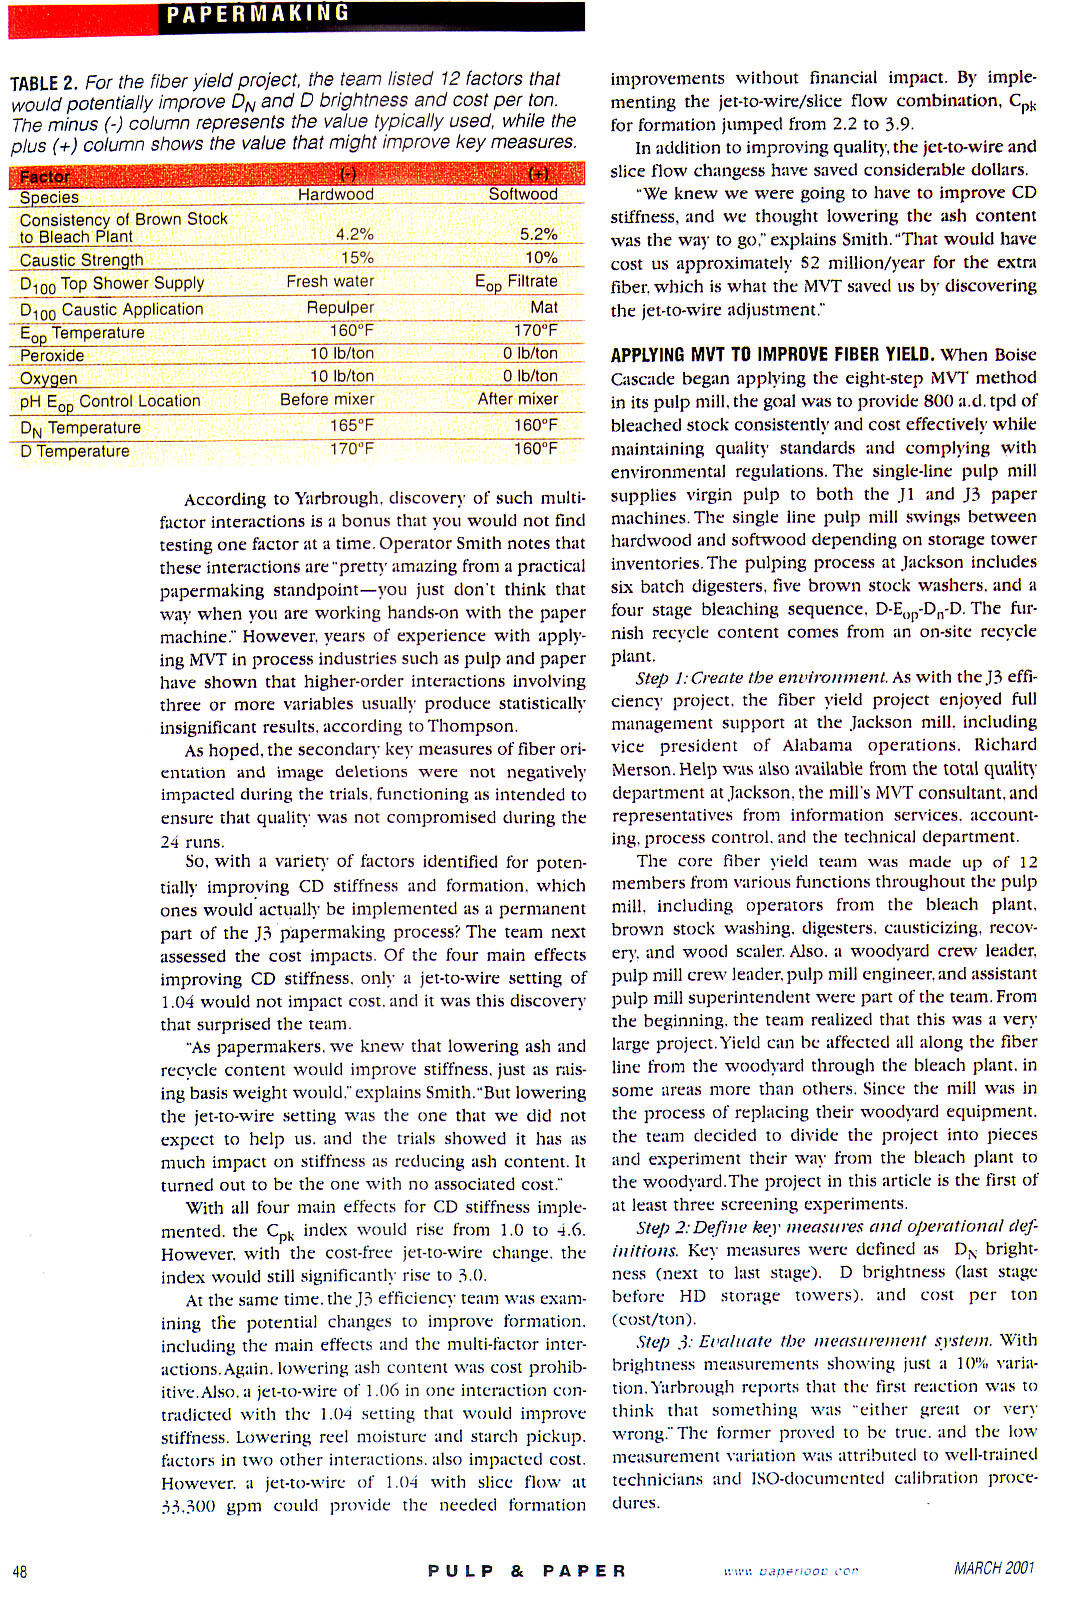 pulp & paper-march 2001-optimization method improves paper, pulp processes at boise cascade  page 4.jpg